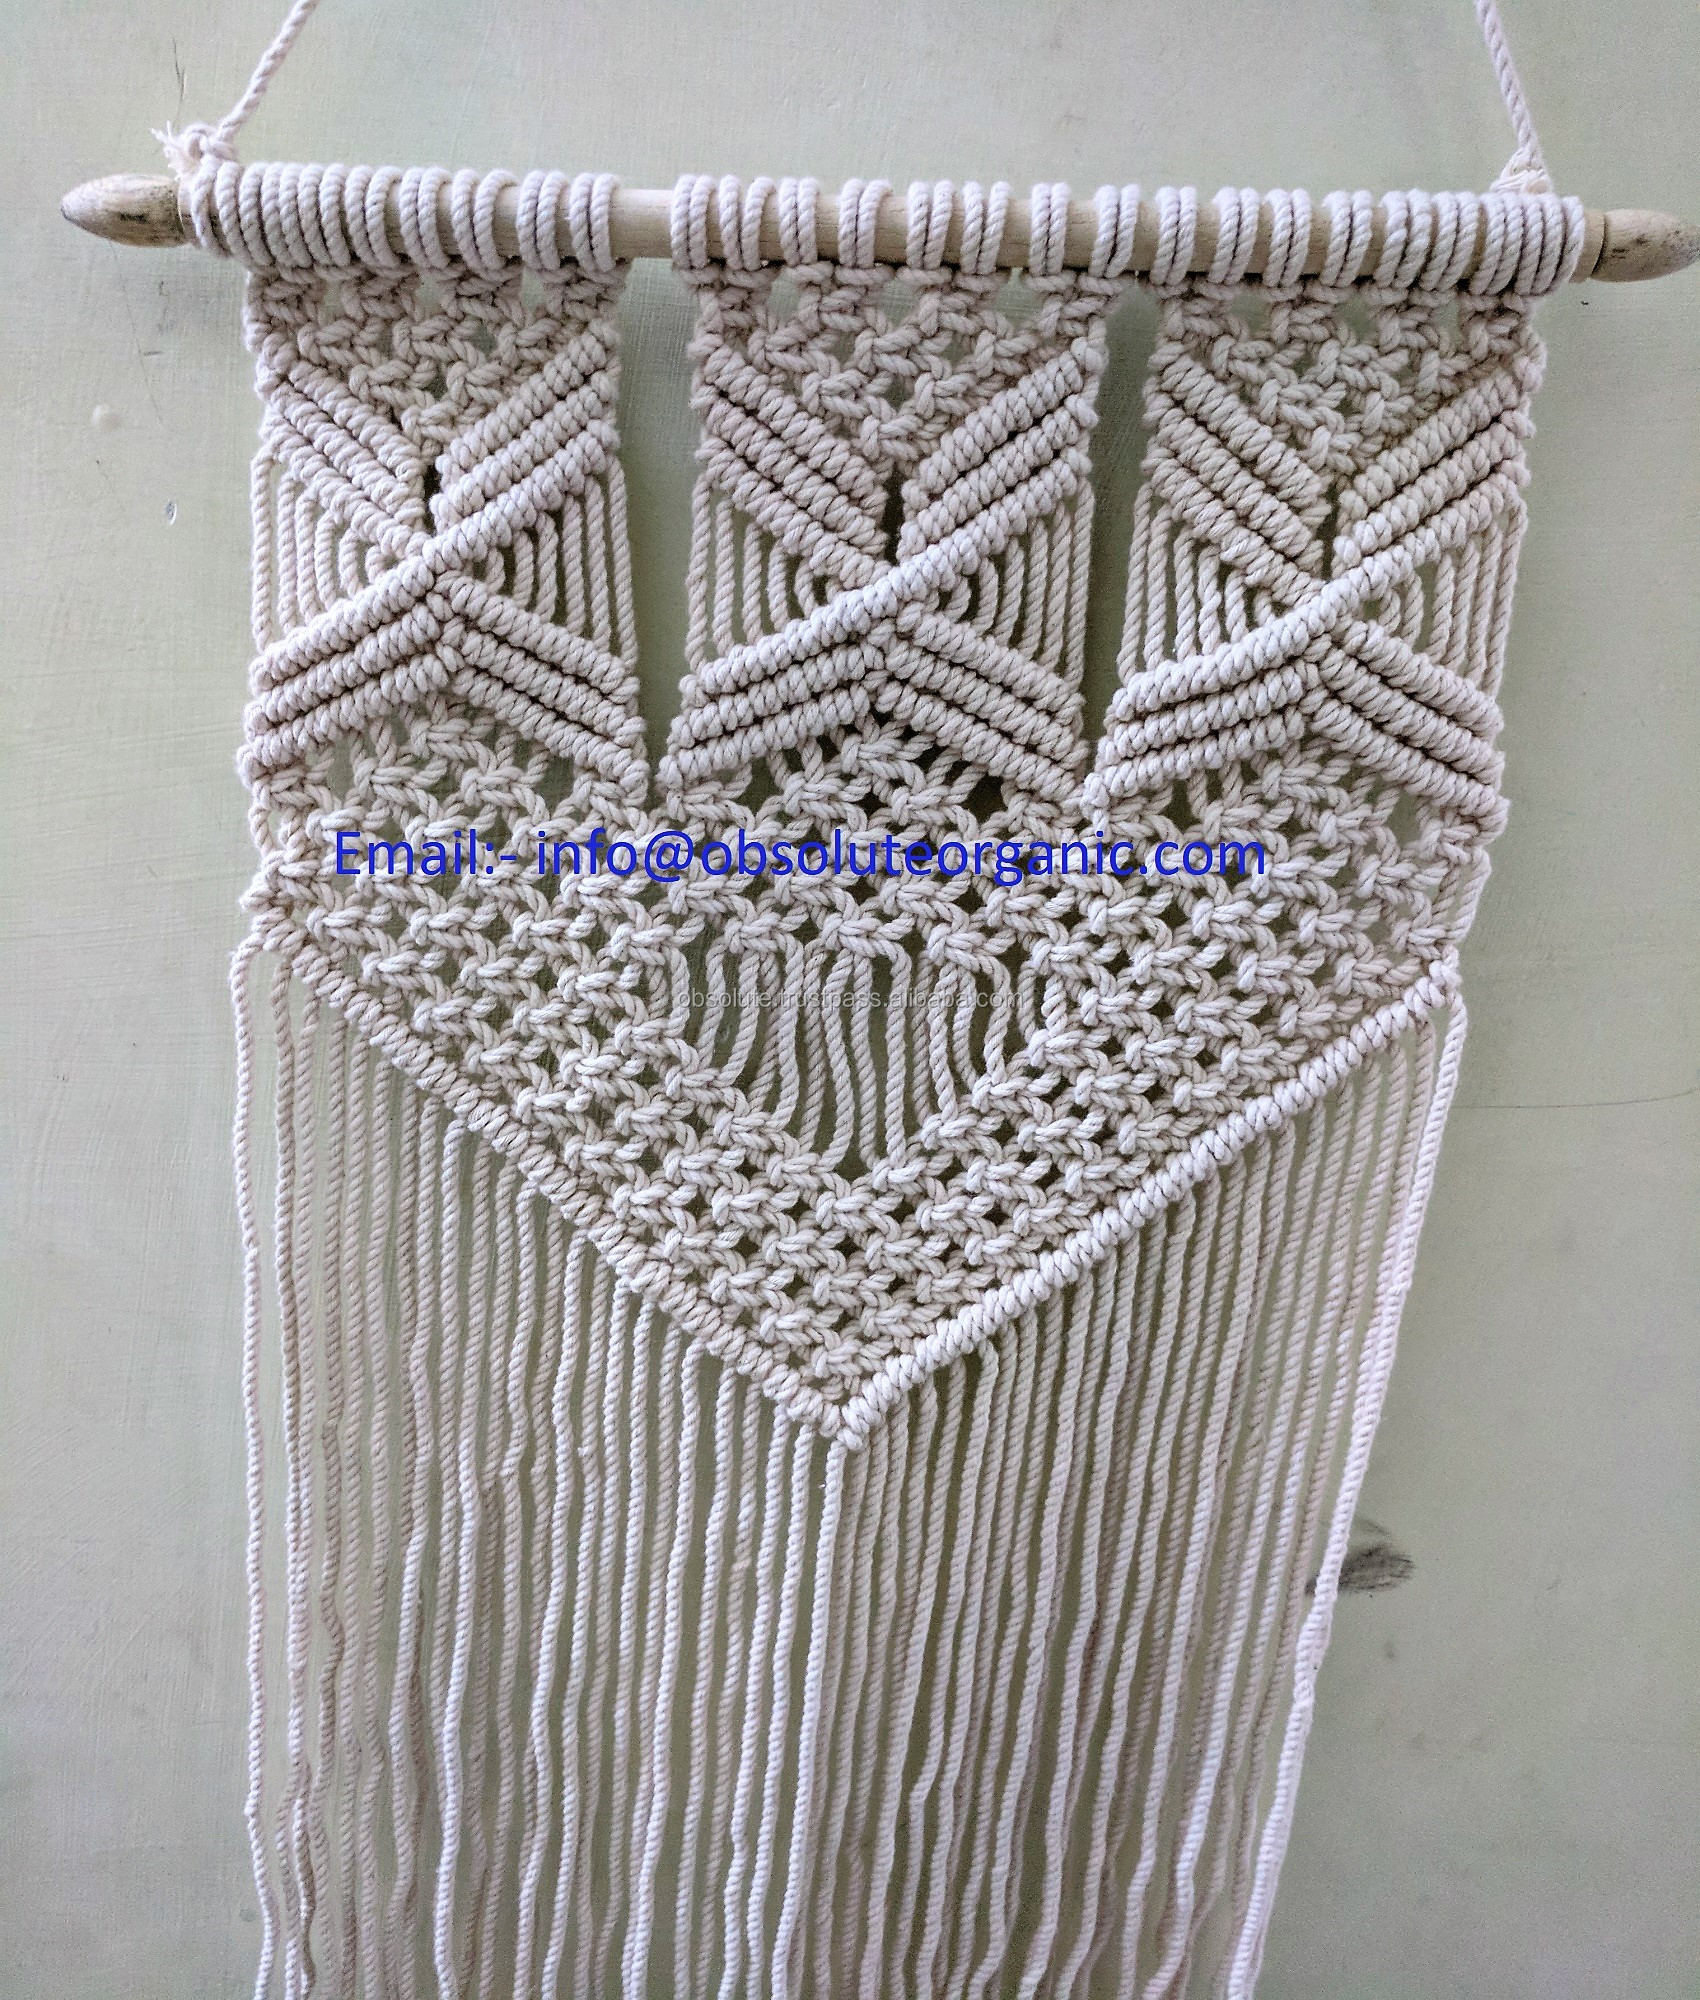 Macrame Twisted Cotton Rope cord